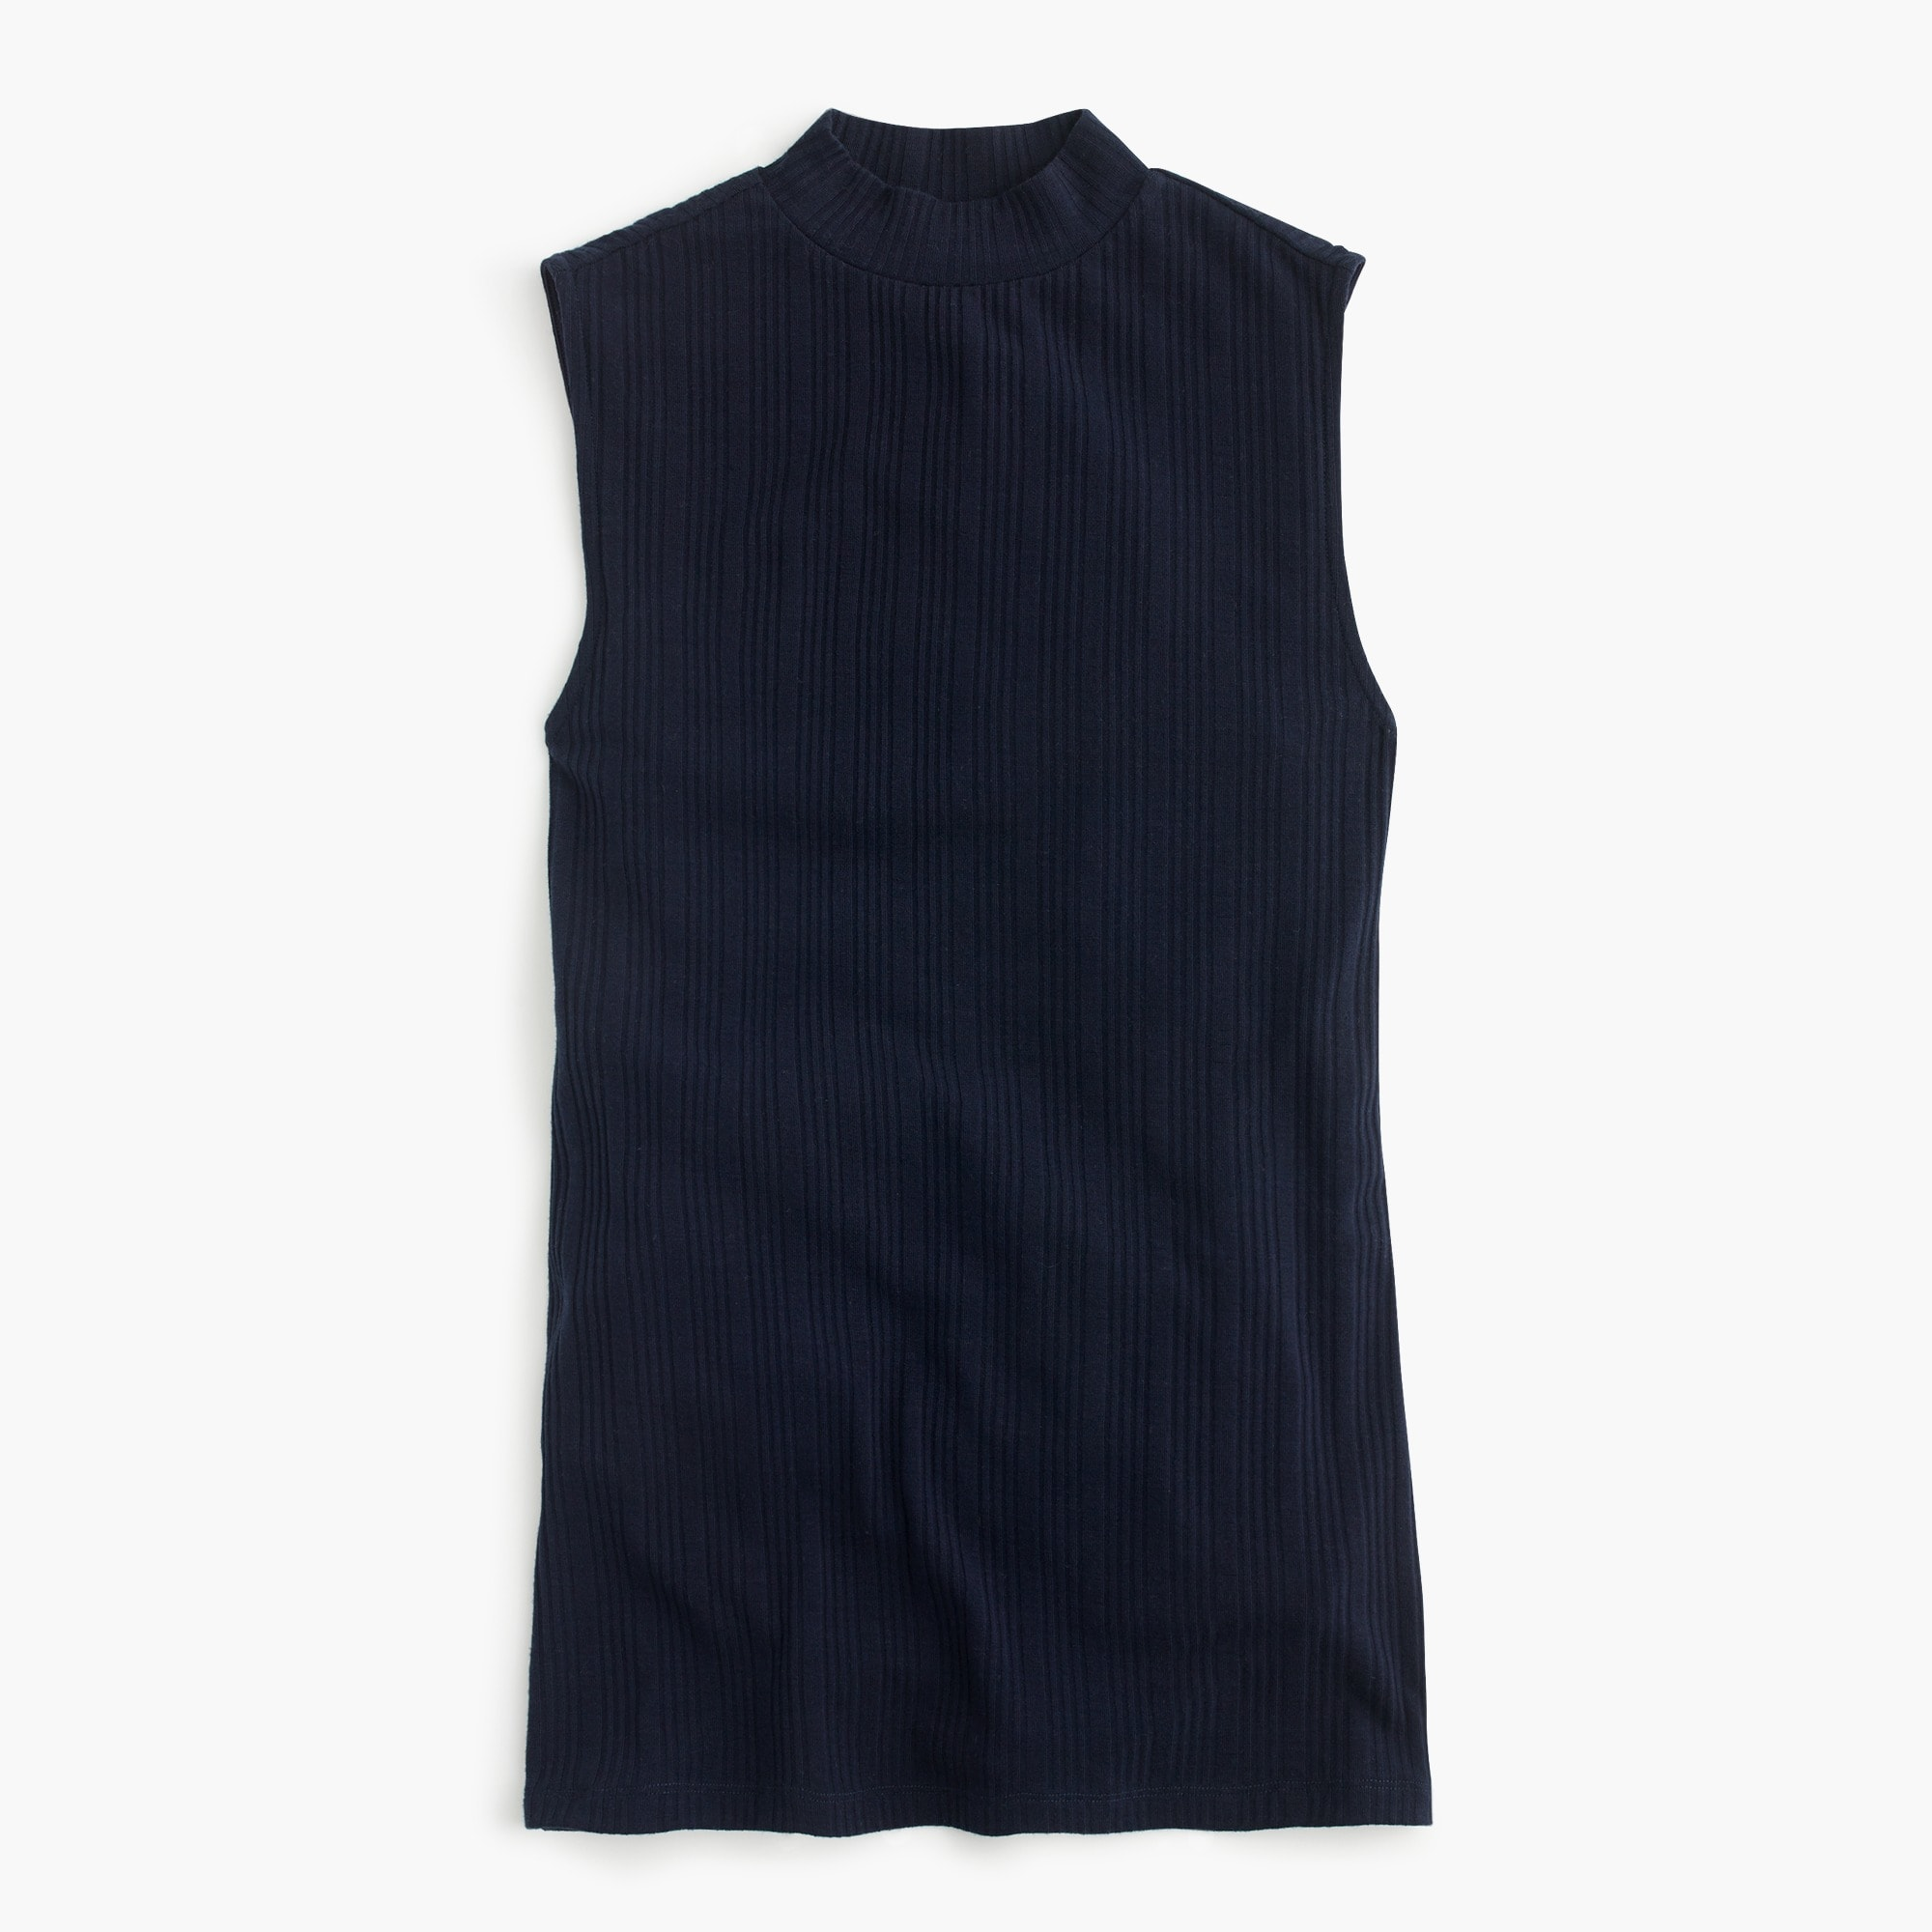 Image 4 for Ribbed mockneck tank top